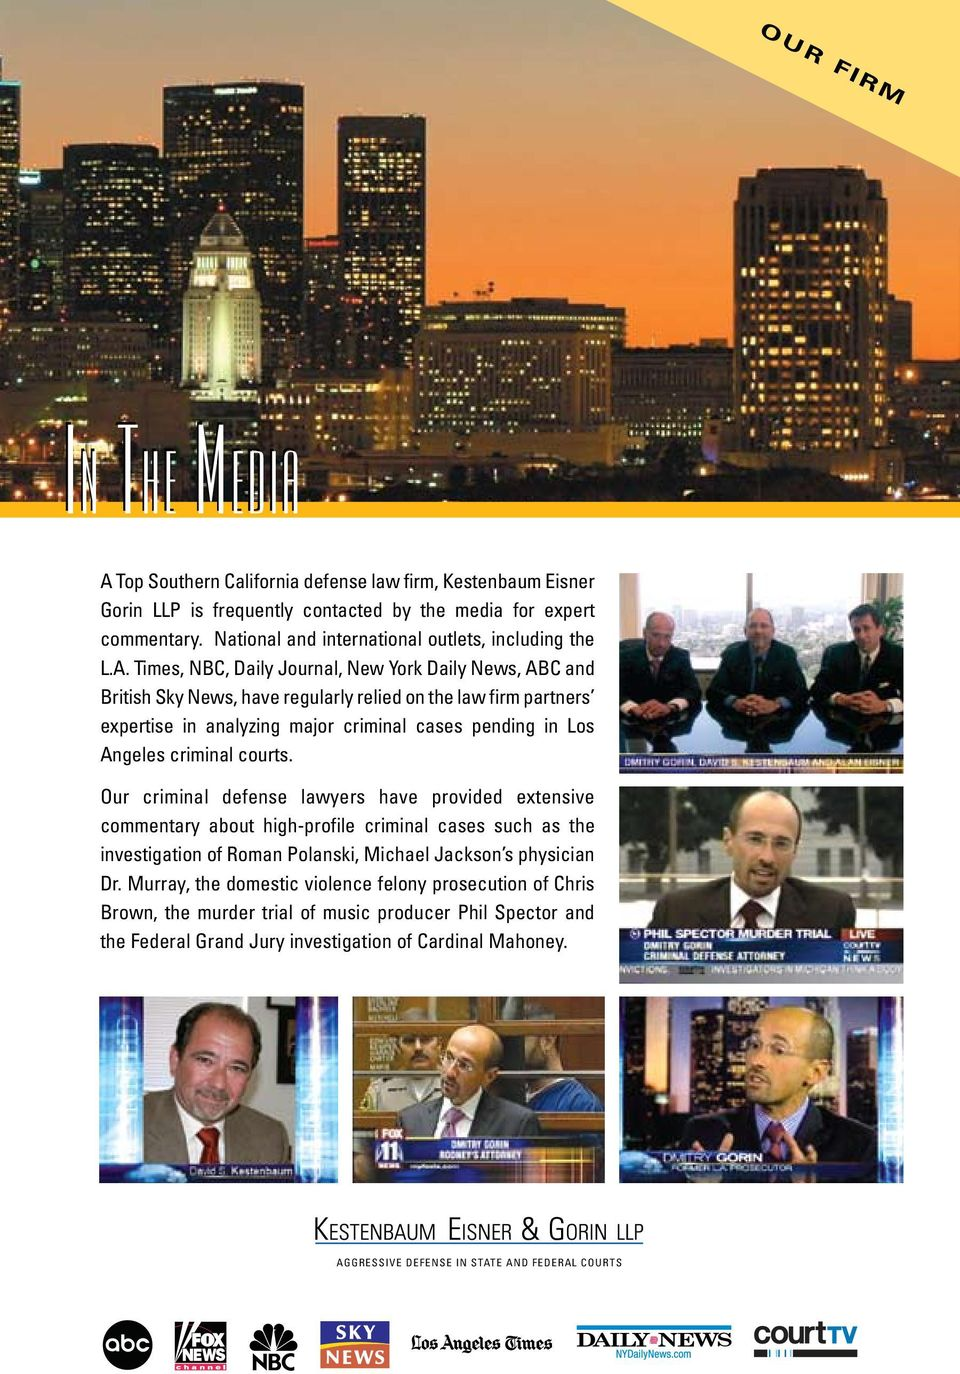 Times, NBC, Daily Journal, New York Daily News, ABC and British Sky News, have regularly relied on the law firm partners expertise in analyzing major criminal cases pending in Los Angeles criminal